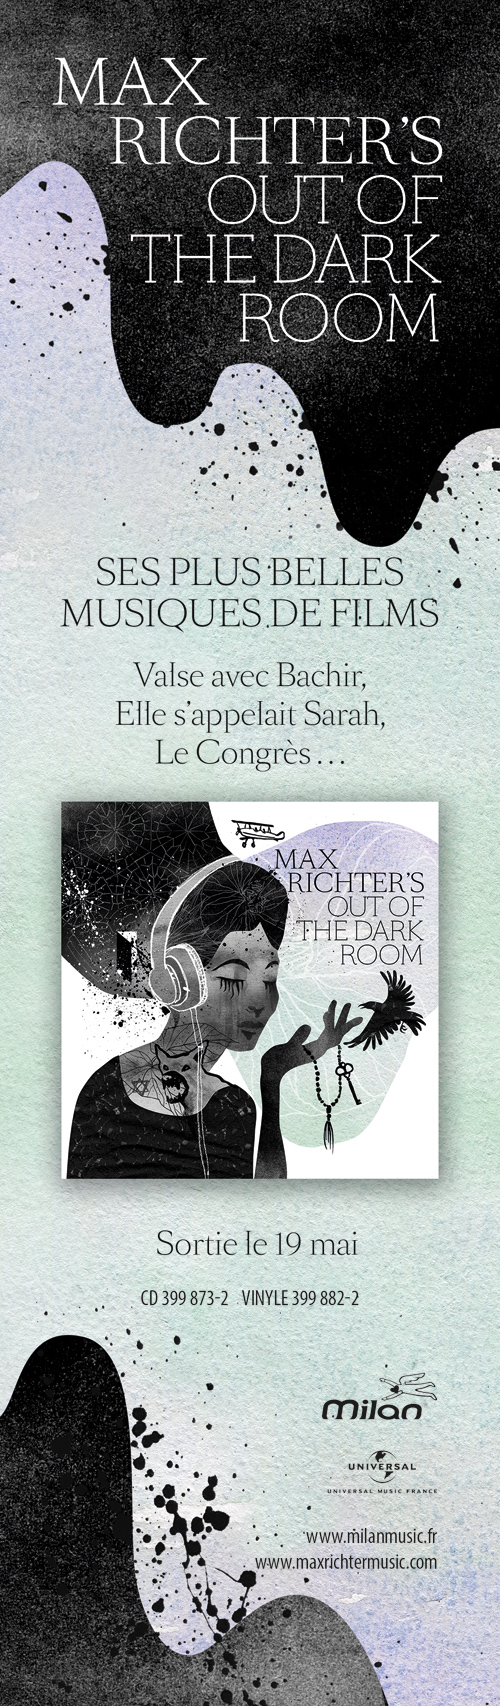 Max Richter's out of the dark room - Album release advertisement for Éditions Milan Music for a French music magazine in 2017.